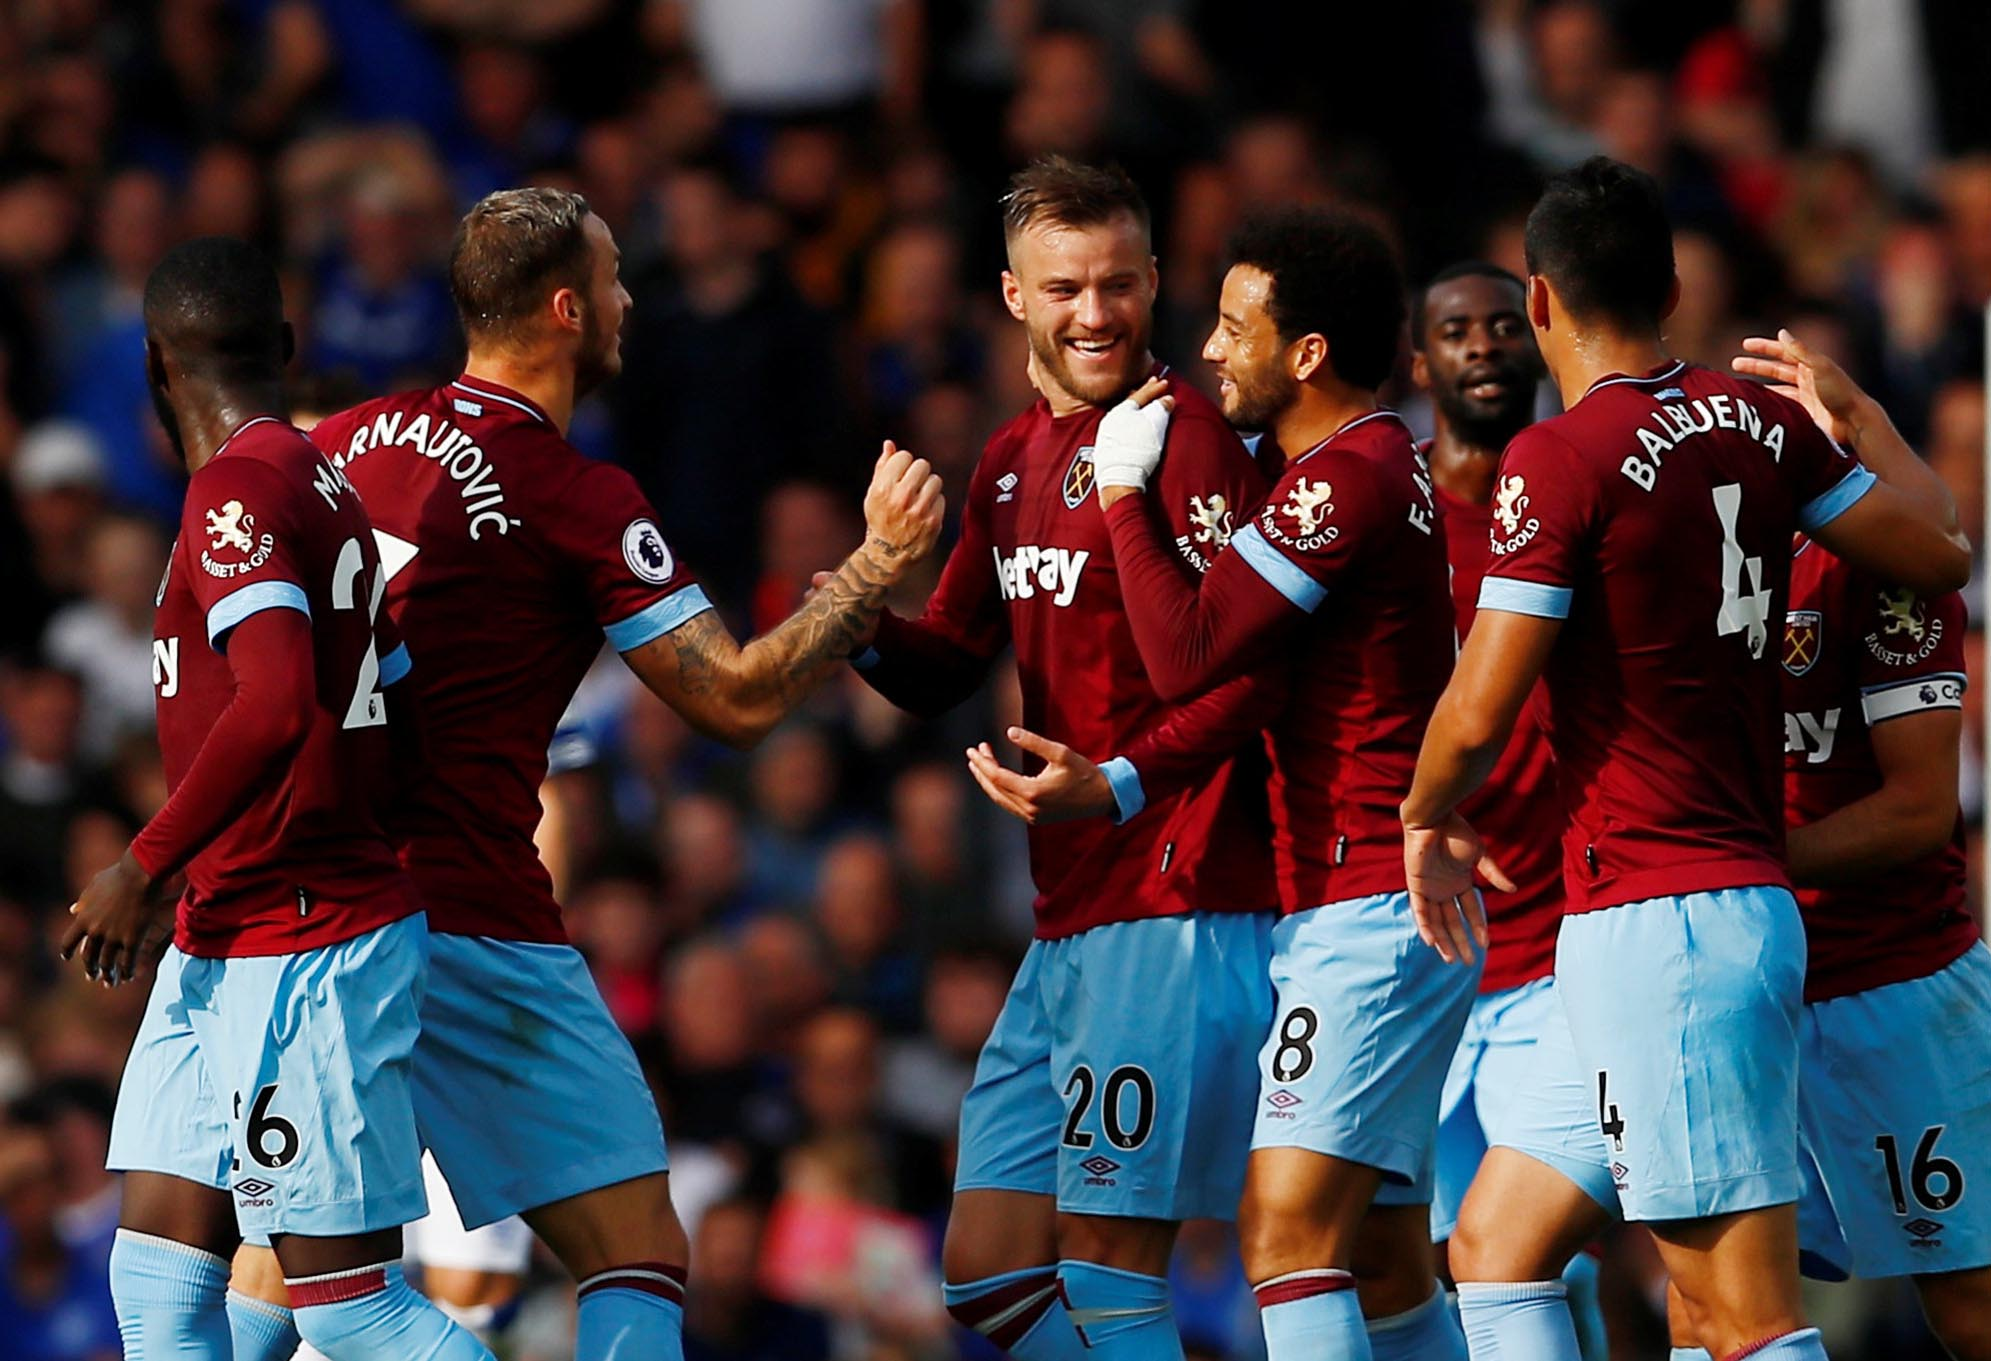 West Ham's Andriy Yarmolenko celebrates scoring their second goal with teammates during Premier League match between Everton and West Ham United, at Goodison Park, in Liverpool, Britain, on September 16, 2018. Photo: Action Images via Reuters